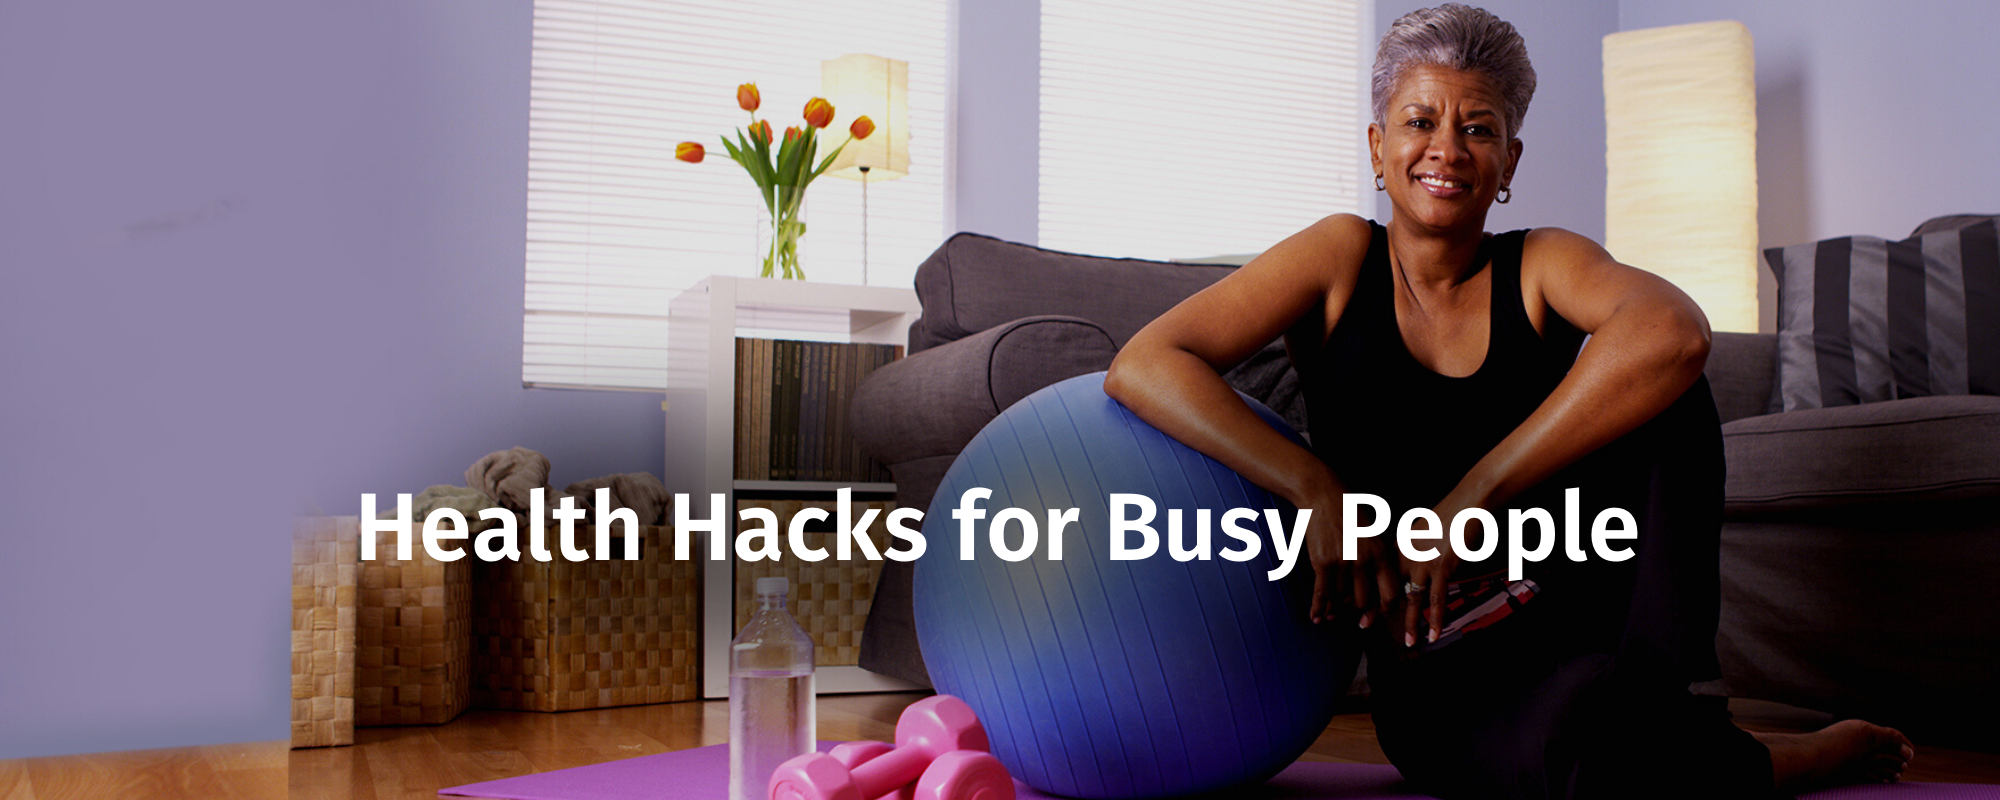 Health Hacks for Busy People